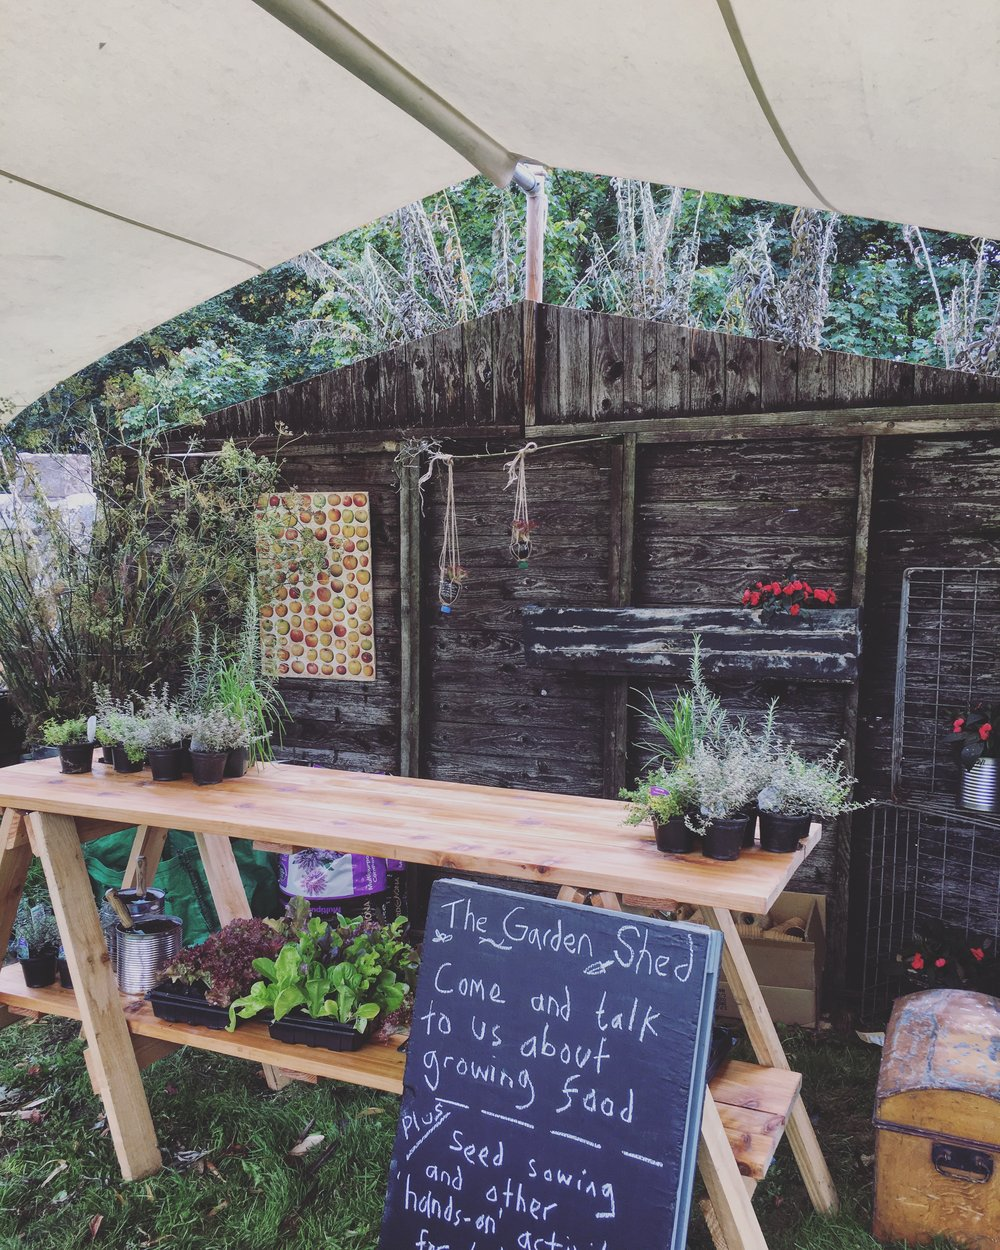 Abergavenny Food Festival: The Garden Shed - SEPTEMBER 2017As part of a weekend of food inspired programming for the Abergavenny Food Festival, I was invited to host the Garden Shed. The Garden Shed was a space dedicated to talking about growing and to host practical workshops and hands-on activities for children.http://www.abergavennyfoodfestival.com/